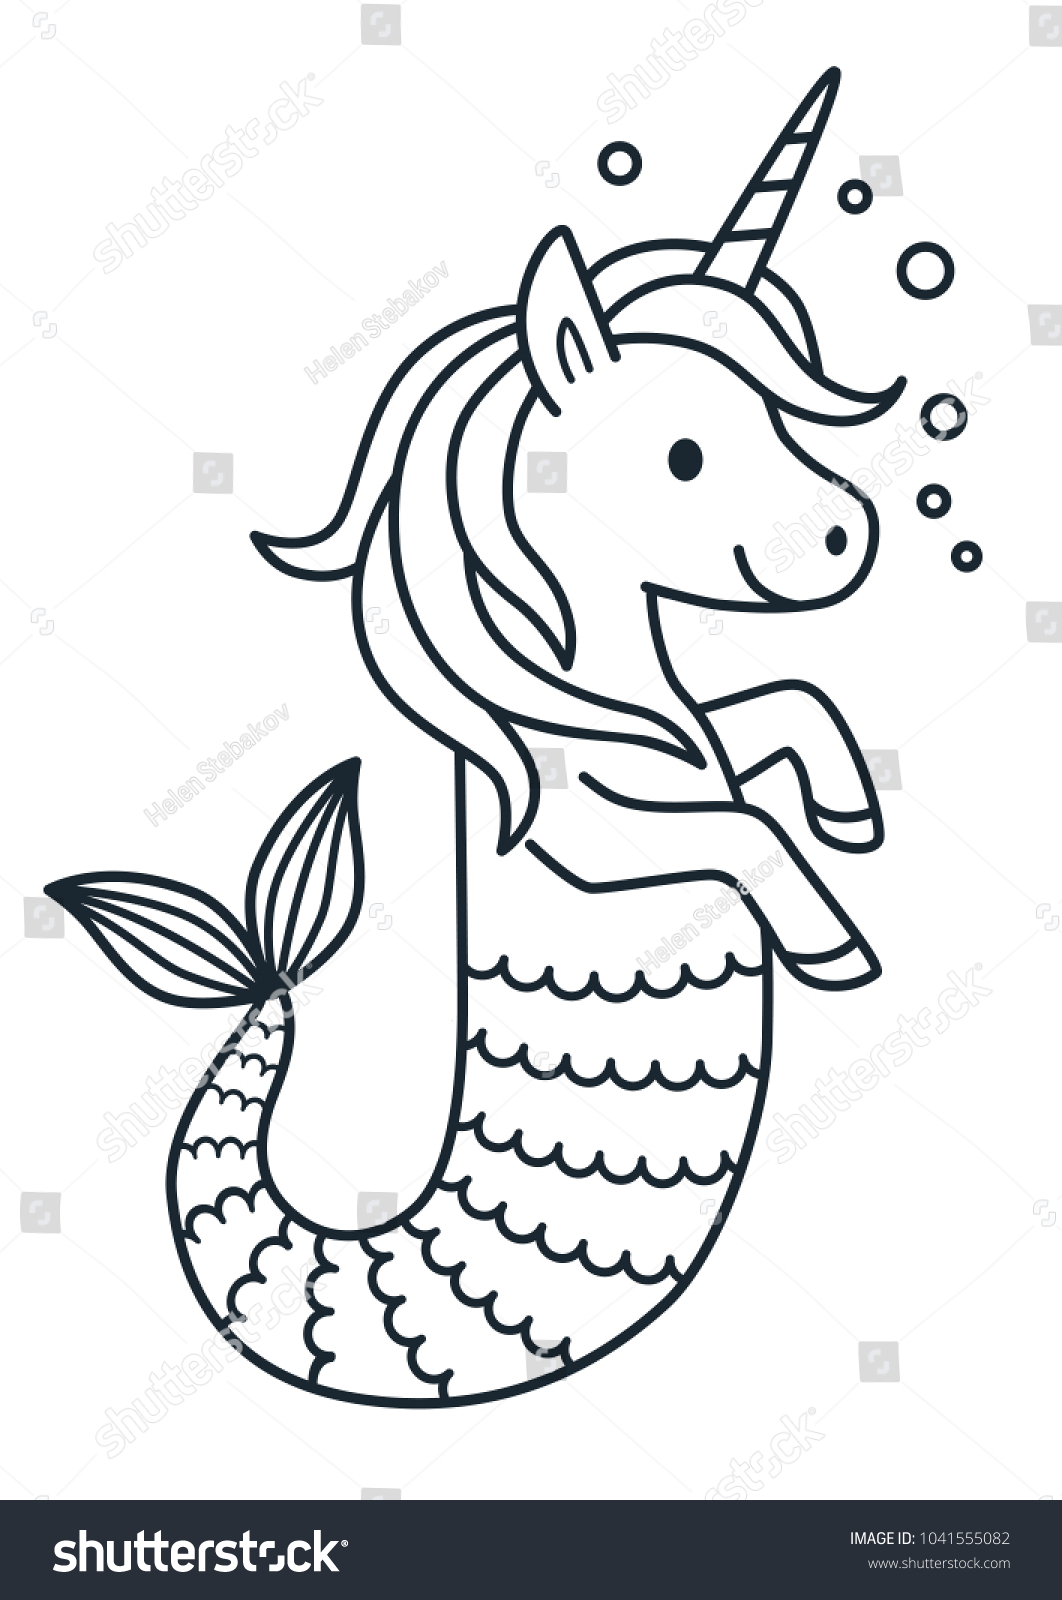 Cute Unicorn Mermaid Vector Coloring Page Stock Vector (Royalty Free ...